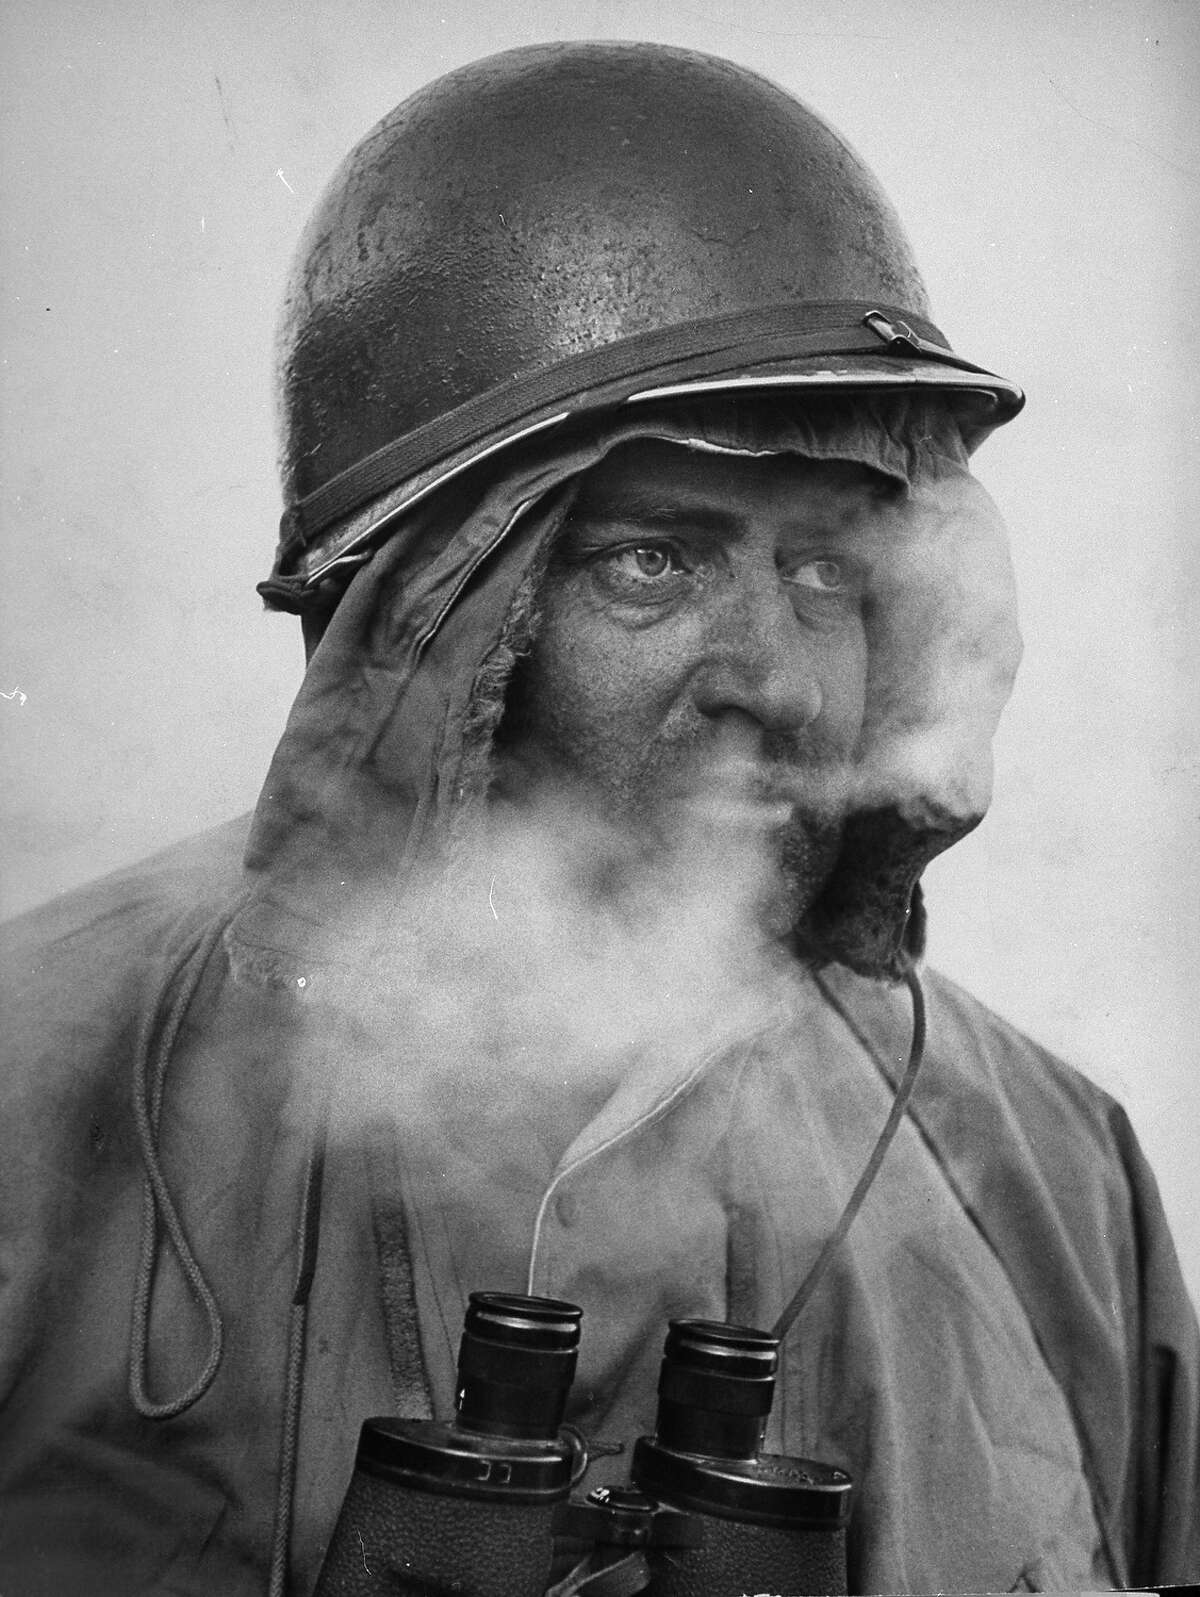 1950: U.S. Army Major Carroll Cooper showing signs of exhaustion after going w/o sleep for three days and three nights in very cold weather during pursuit of North Koreans though the gorges of the Yalu River.